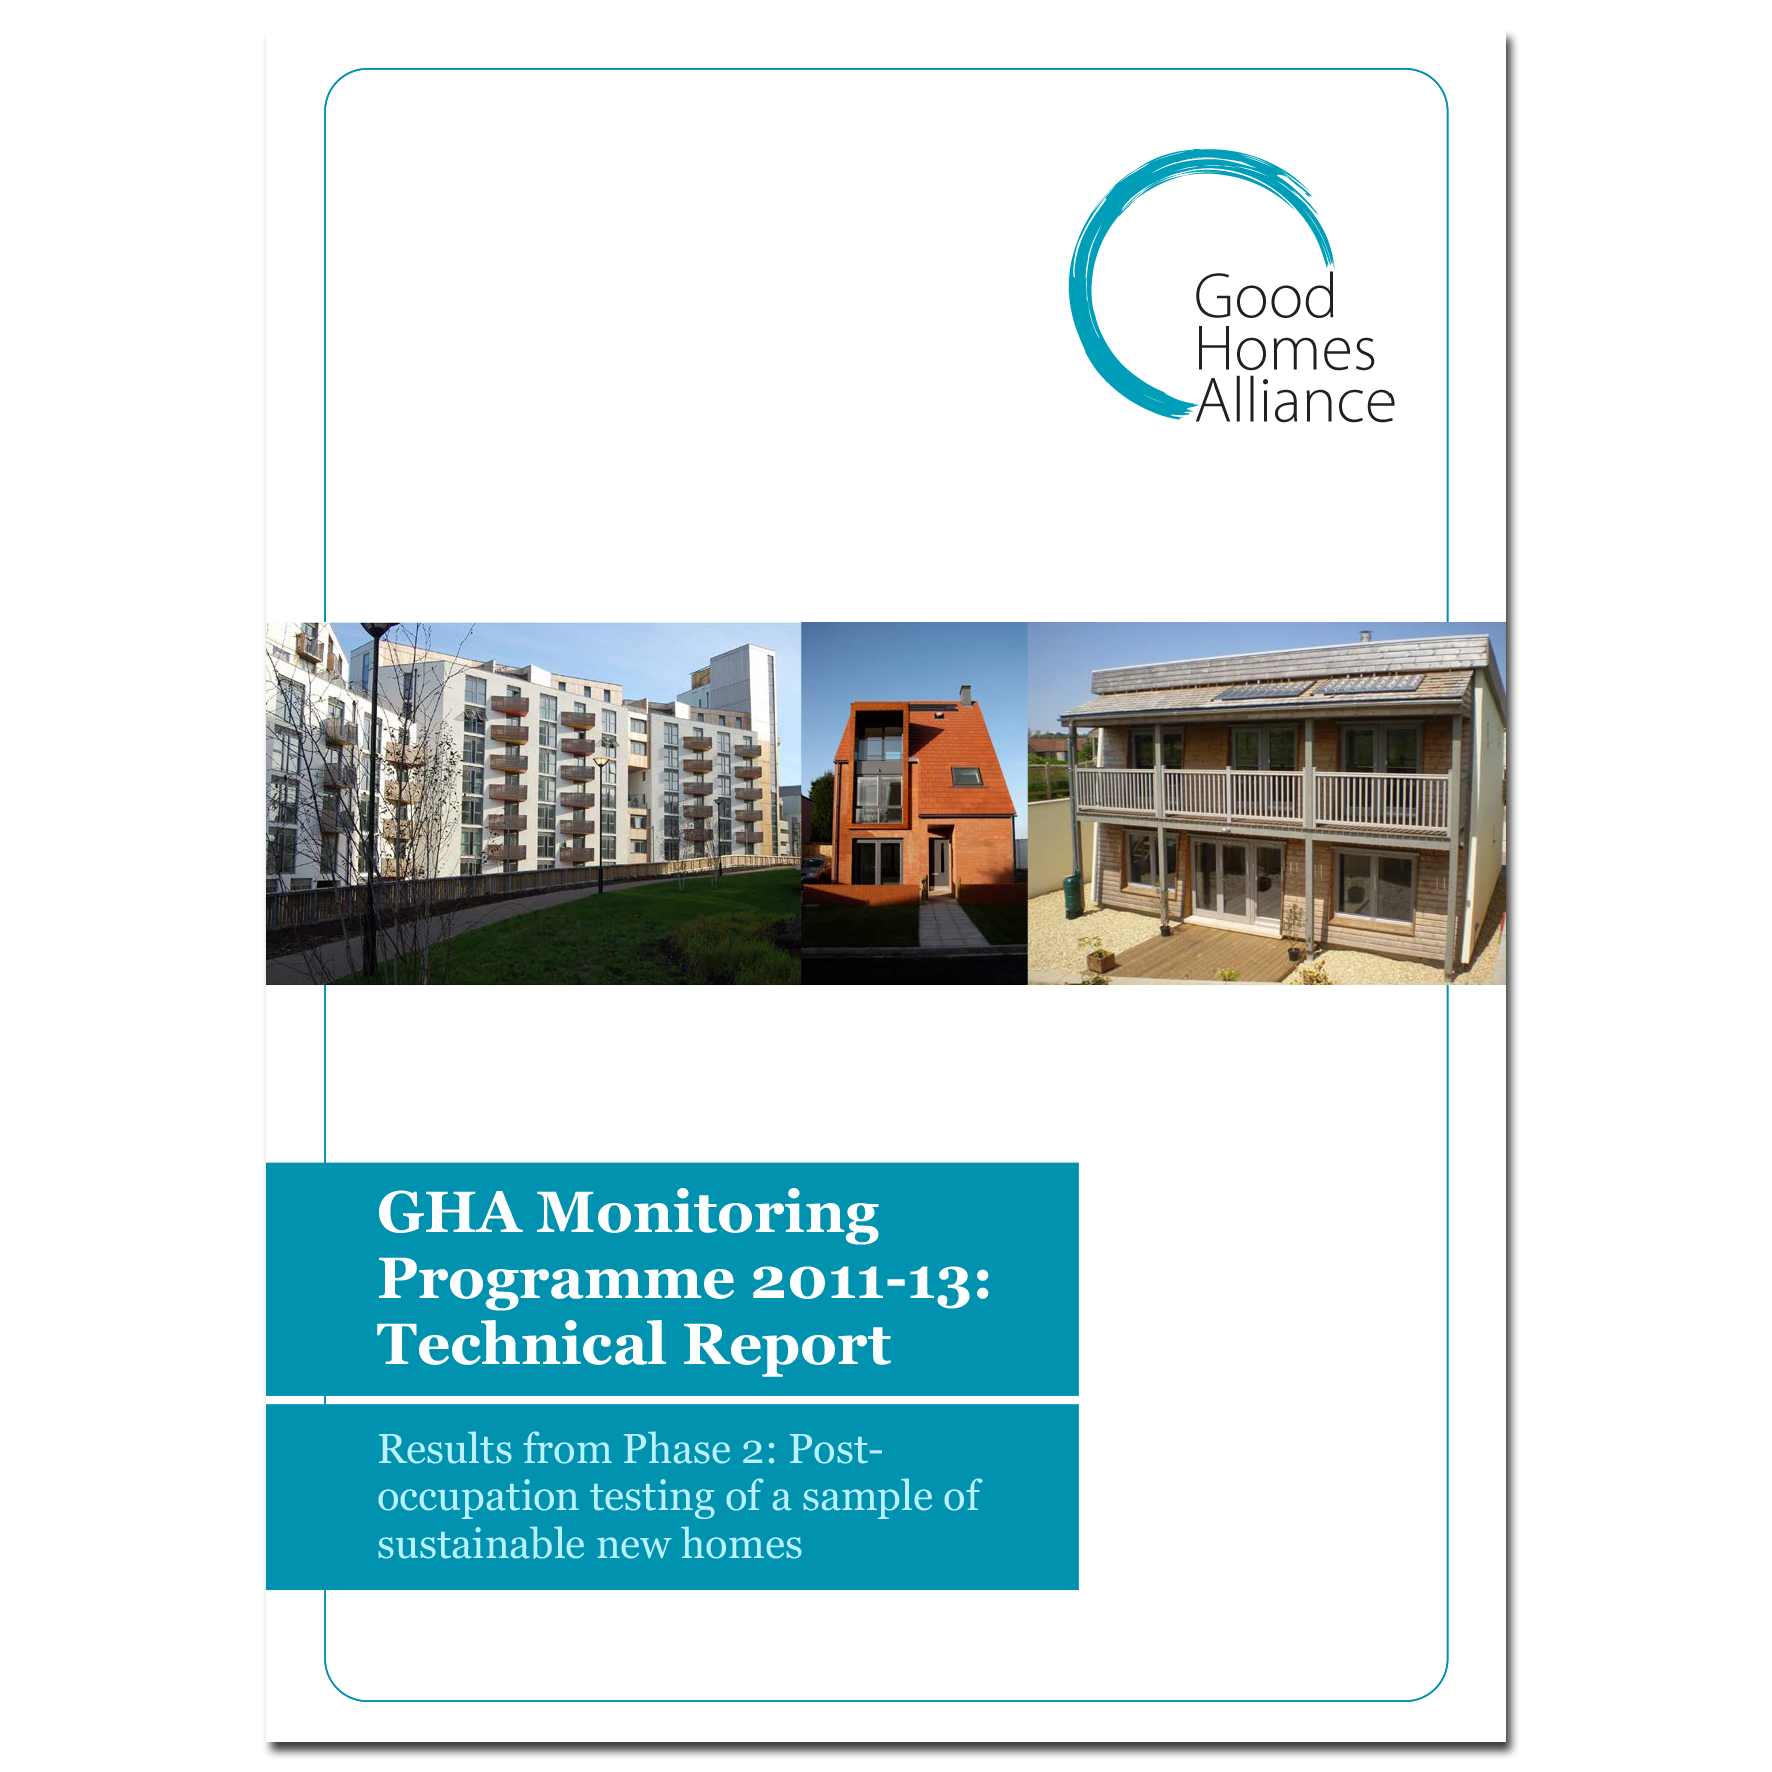 GHA Monitoring Programme - Phase 2 Summary and Recommendations